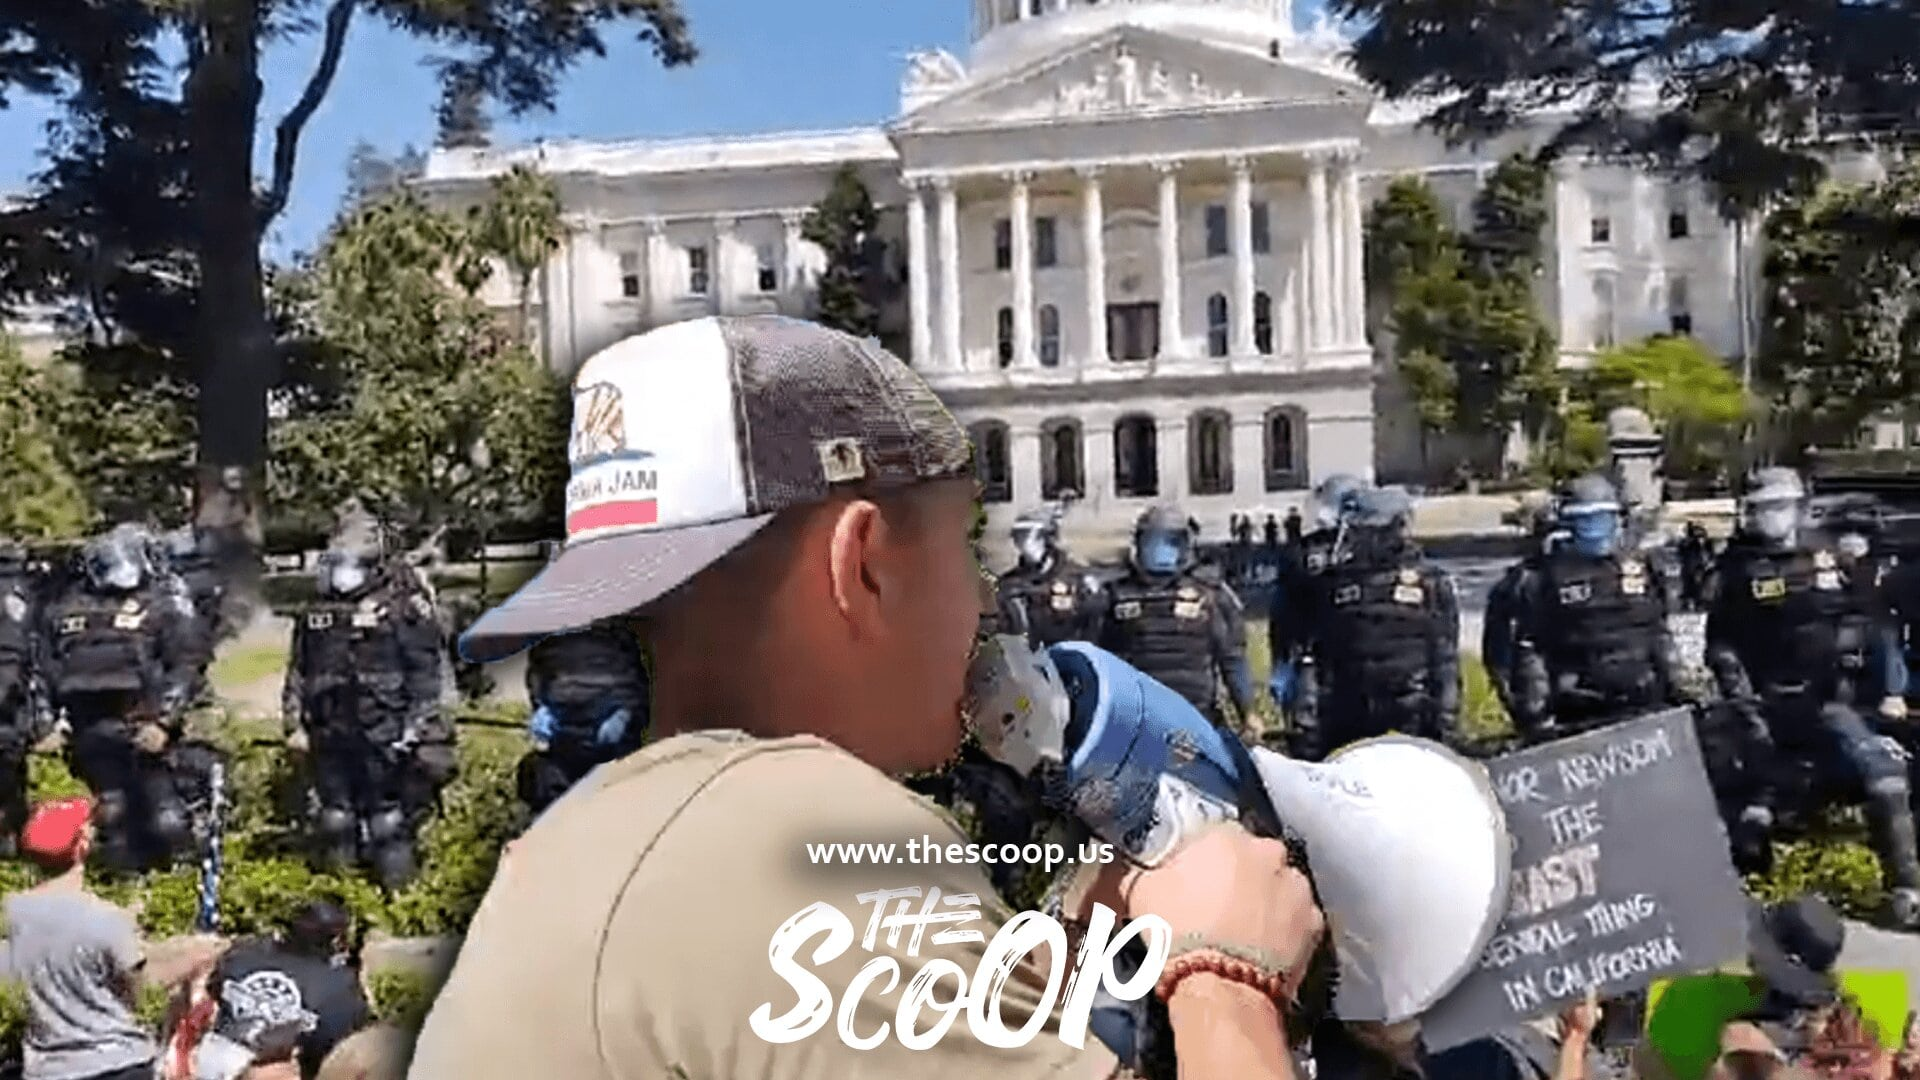 WATCH: California Police Officers At Anti-Lockdown Protest Appear To STAND DOWN After Marine Vet With Megaphone Challenges Their Integrity